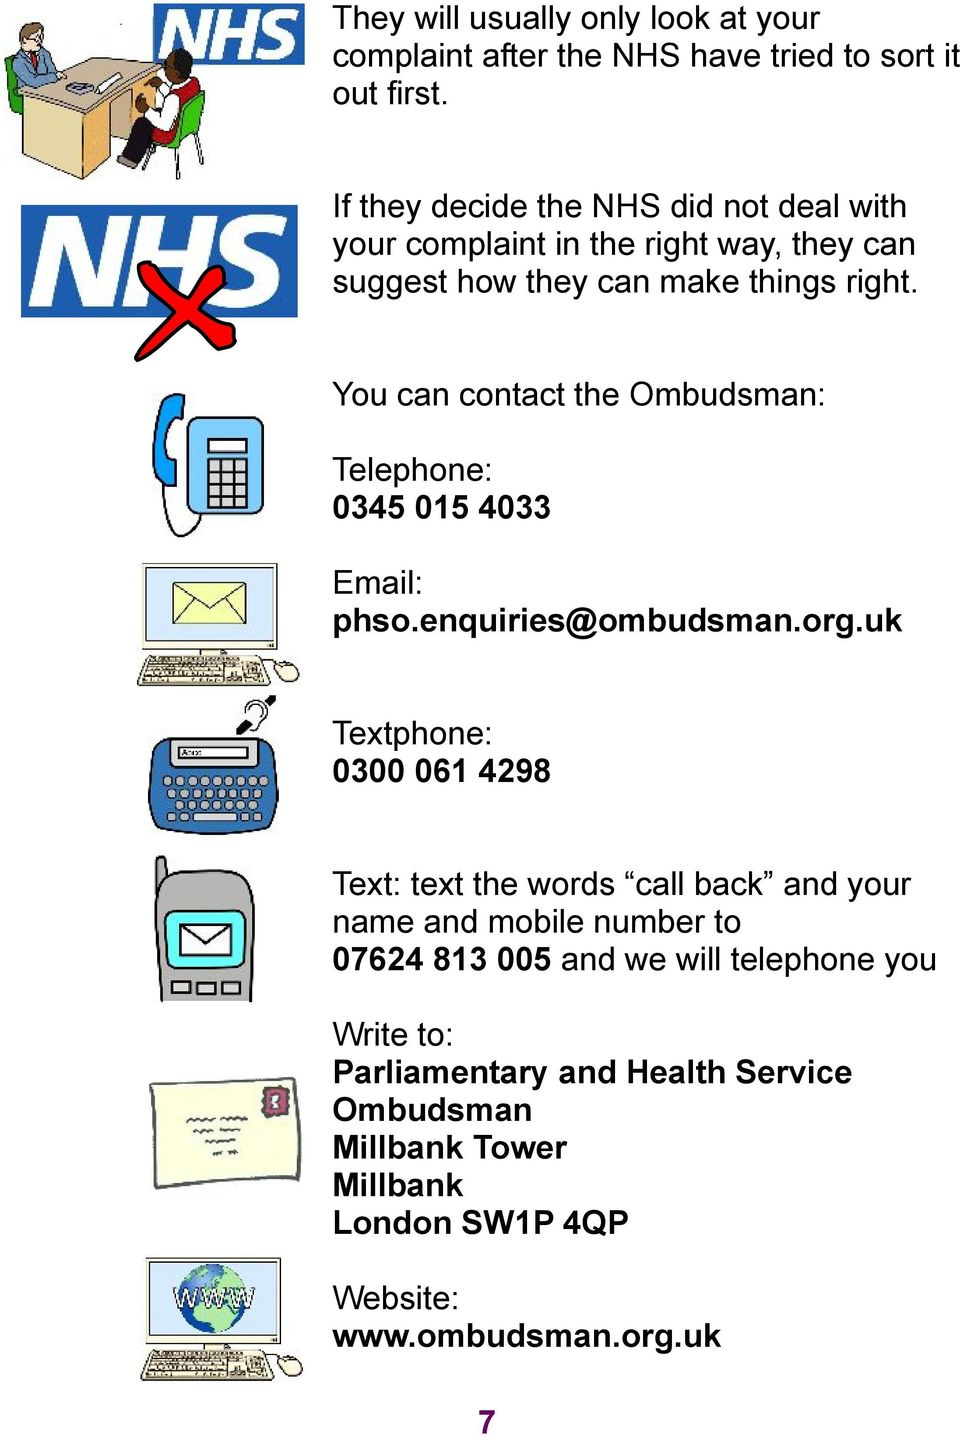 You can contact the Ombudsman: Telephone: 0345 015 4033 Email: phso.enquiries@ombudsman.org.